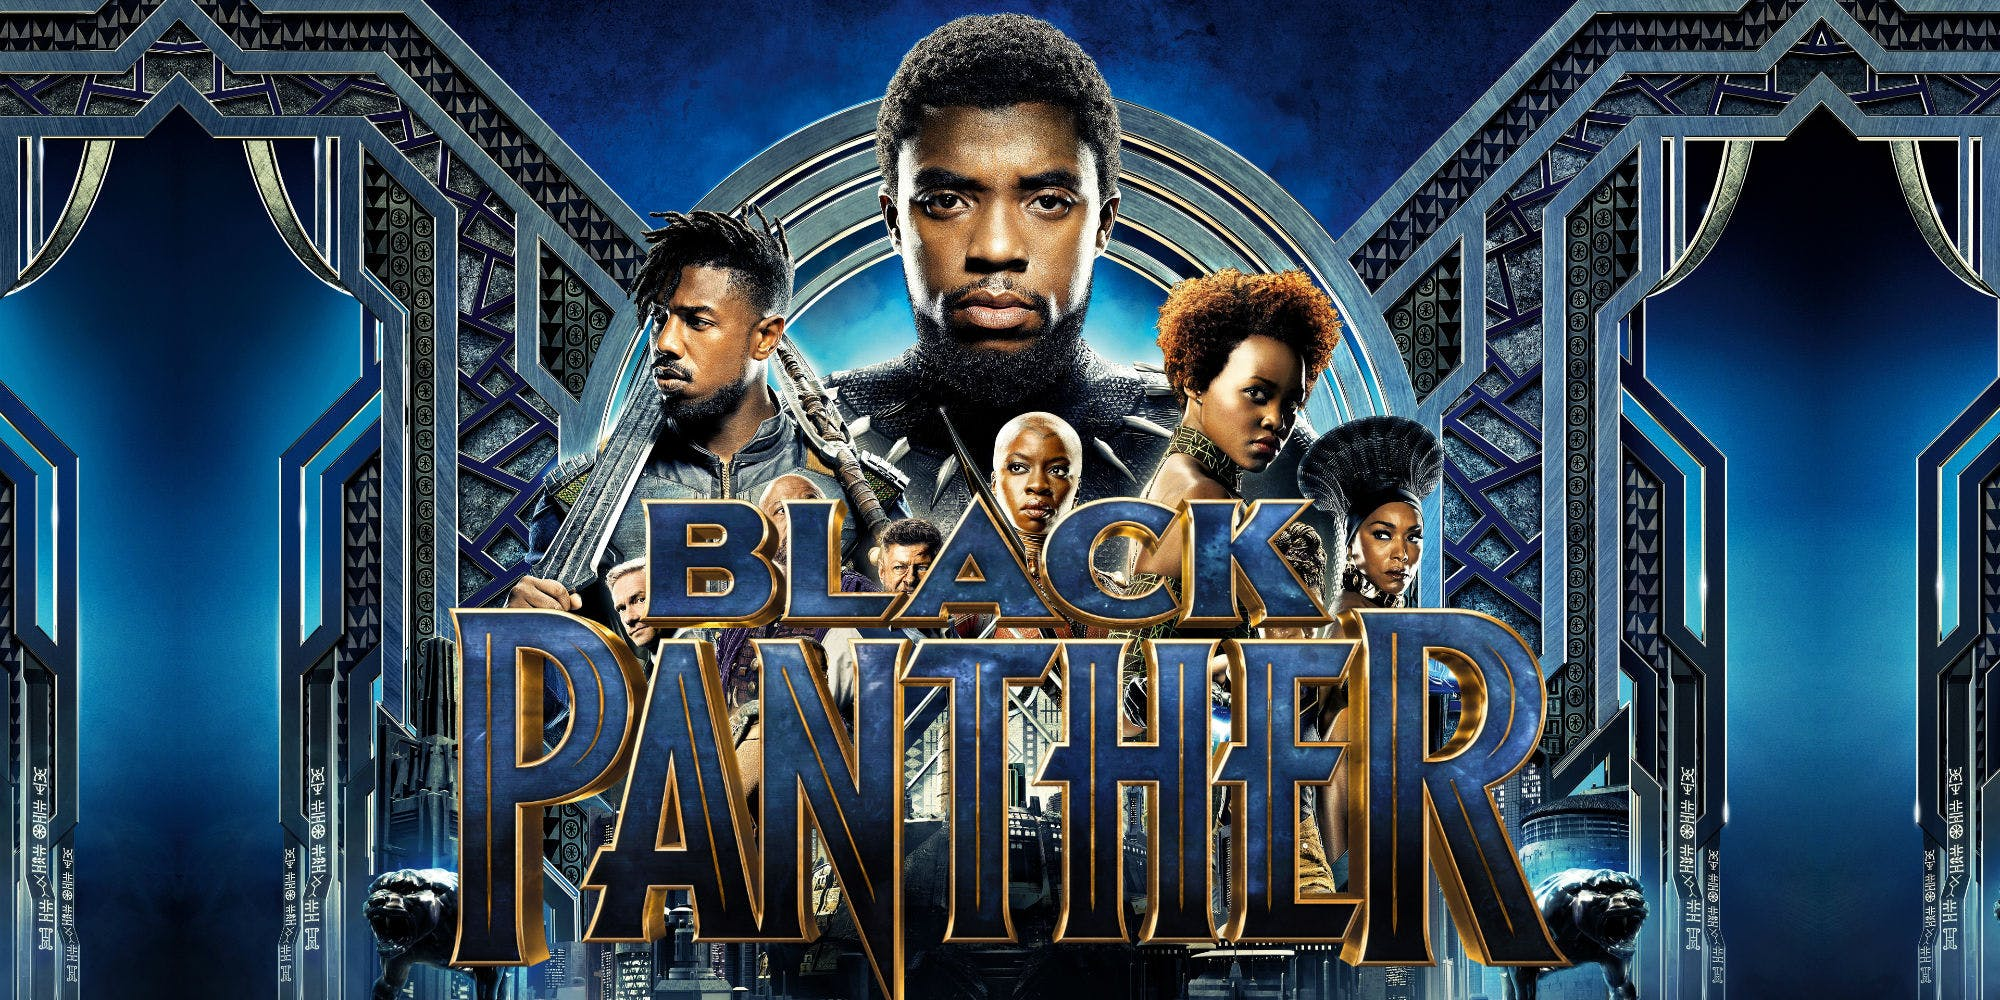 Open Air Cinema - Black Panther